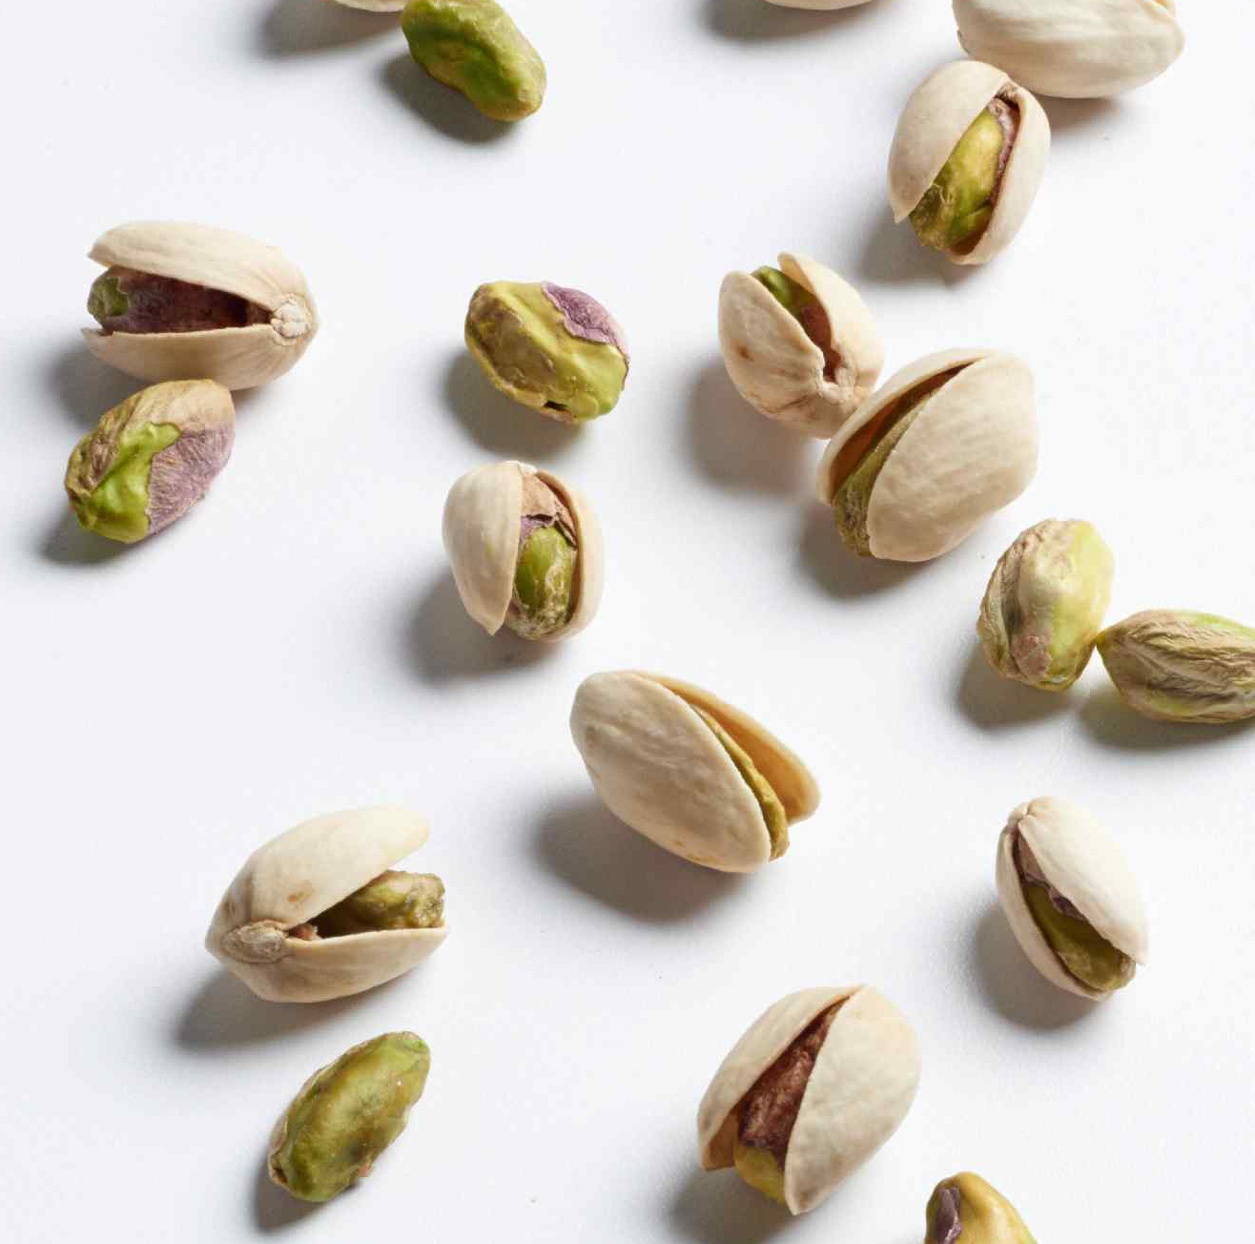 pistachios in shells on a white background